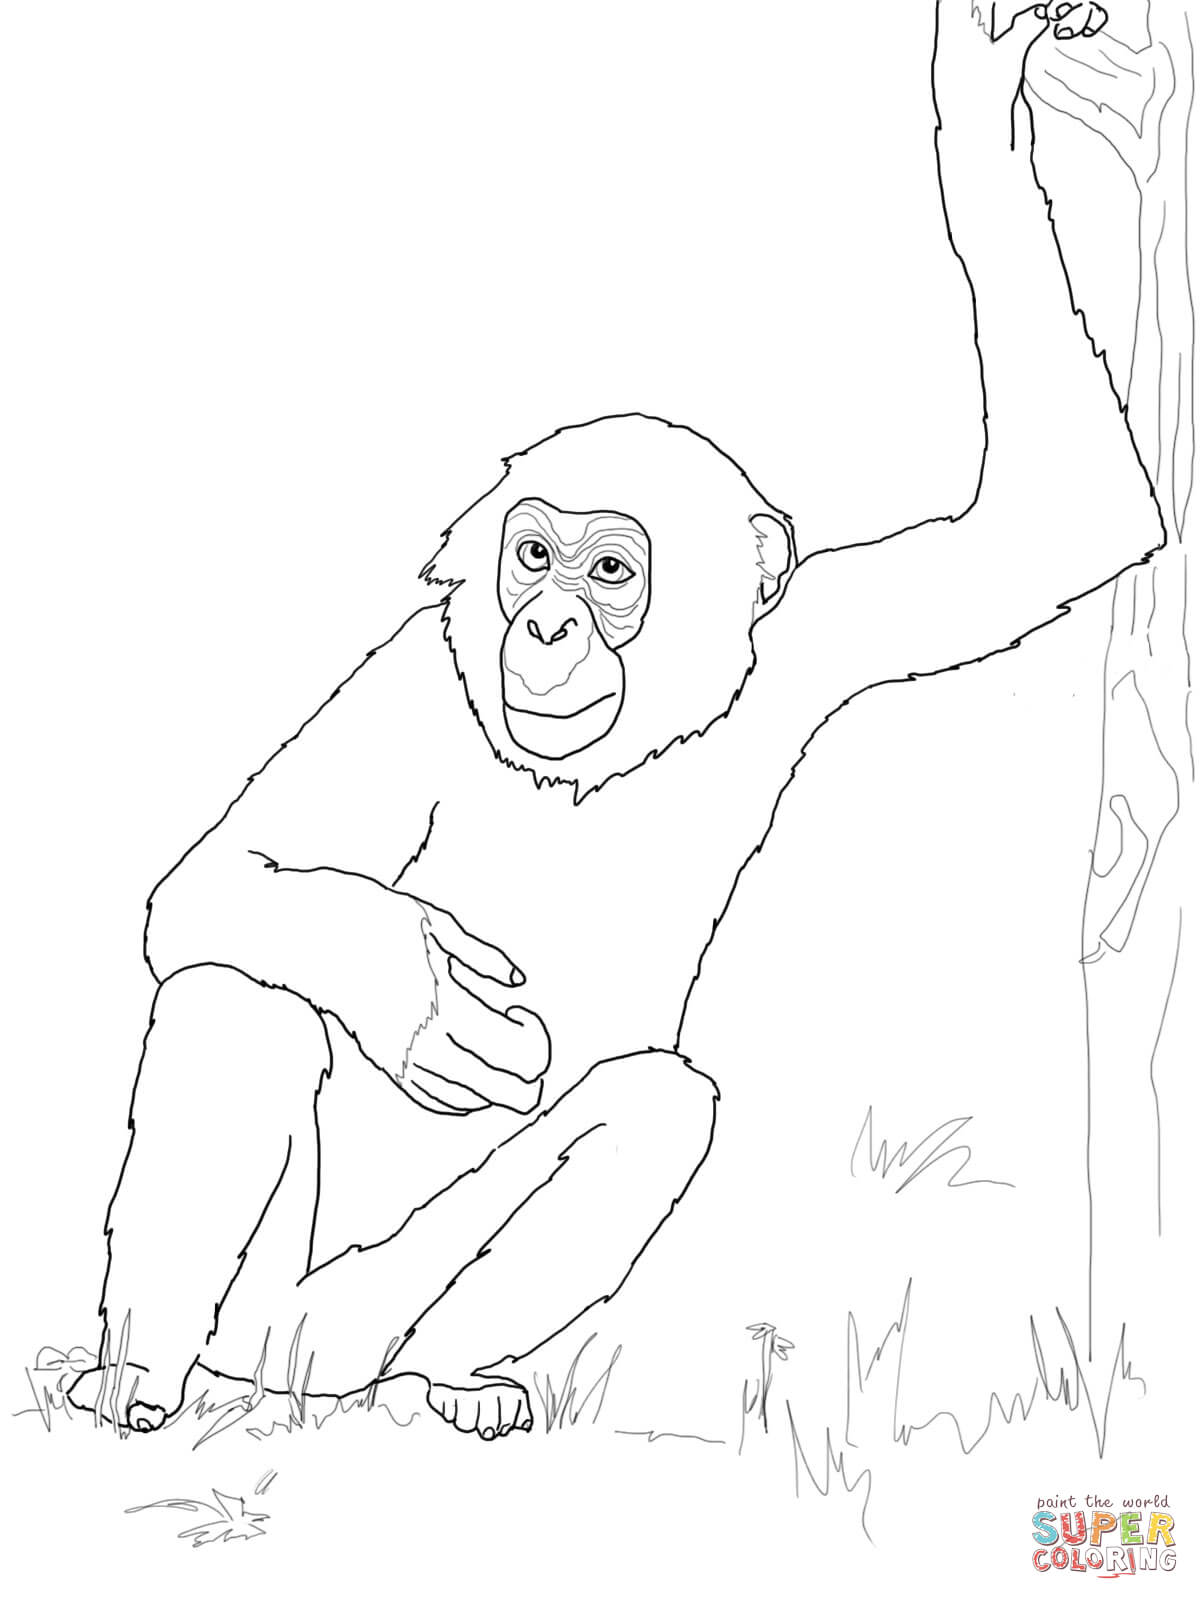 bonobo chimpanzee coloring page free printable coloring pages